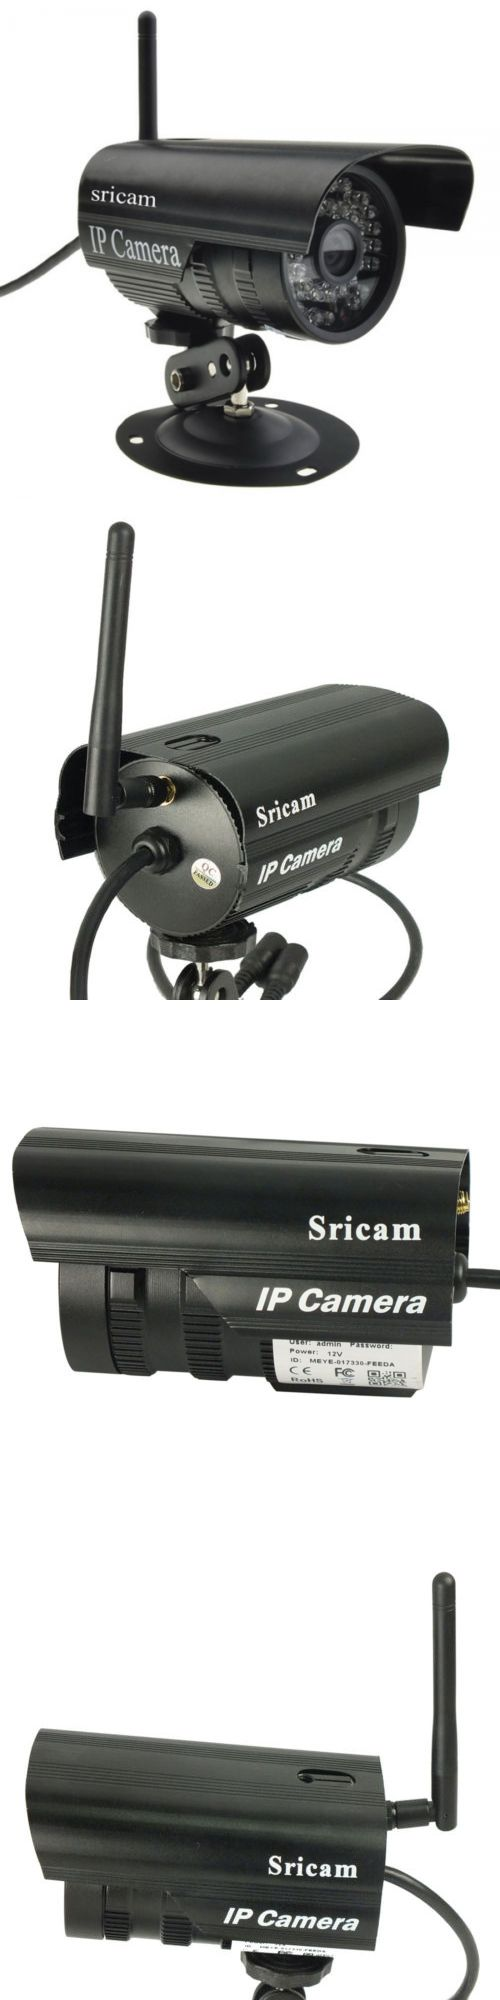 Security Cameras: Sricam 720P Hd Wireless Outdoor Ip66 Waterproof P2p Ip Camera Ir Cut For Phone BUY IT NOW ONLY: $34.03